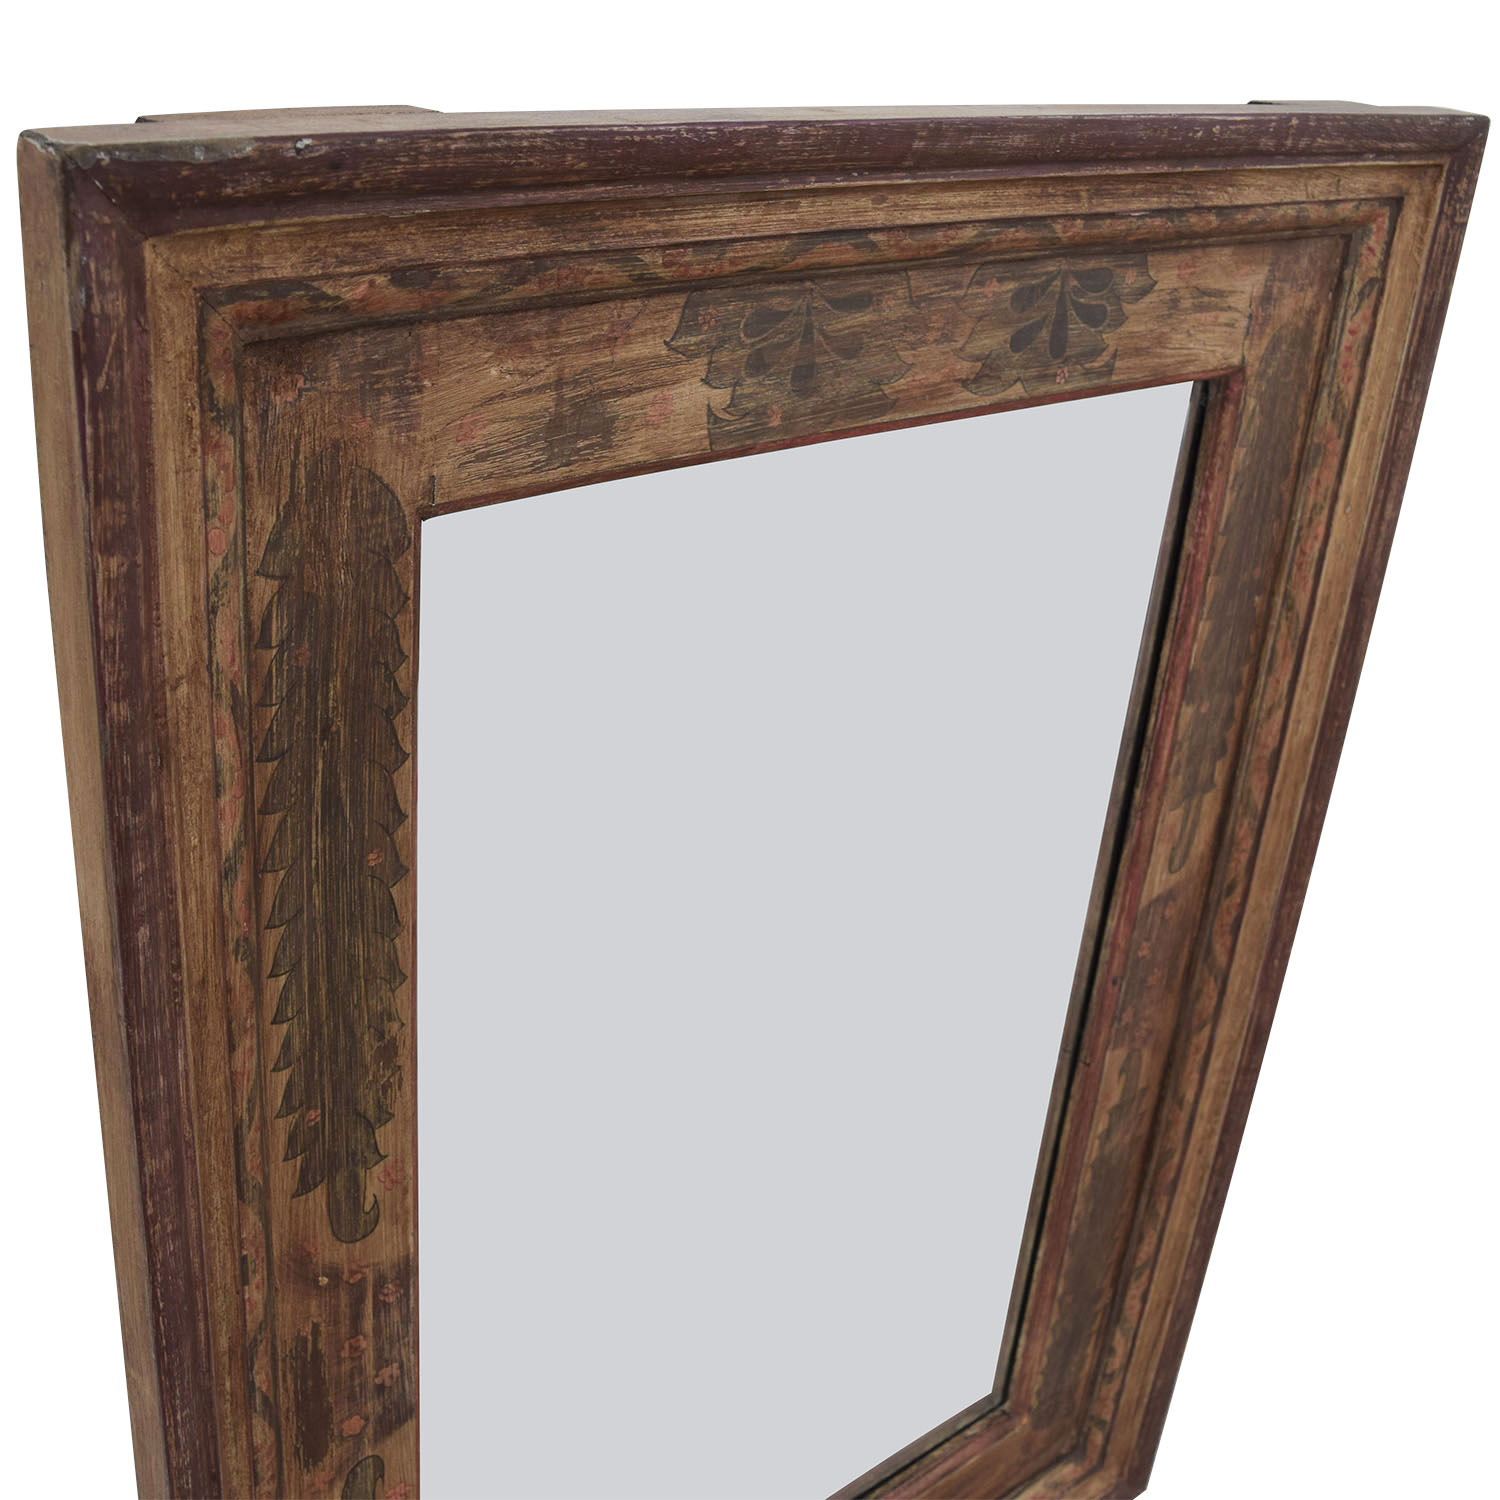 73 Off Pottery Barn Pottery Barn Painted Wooden Mirror Decor